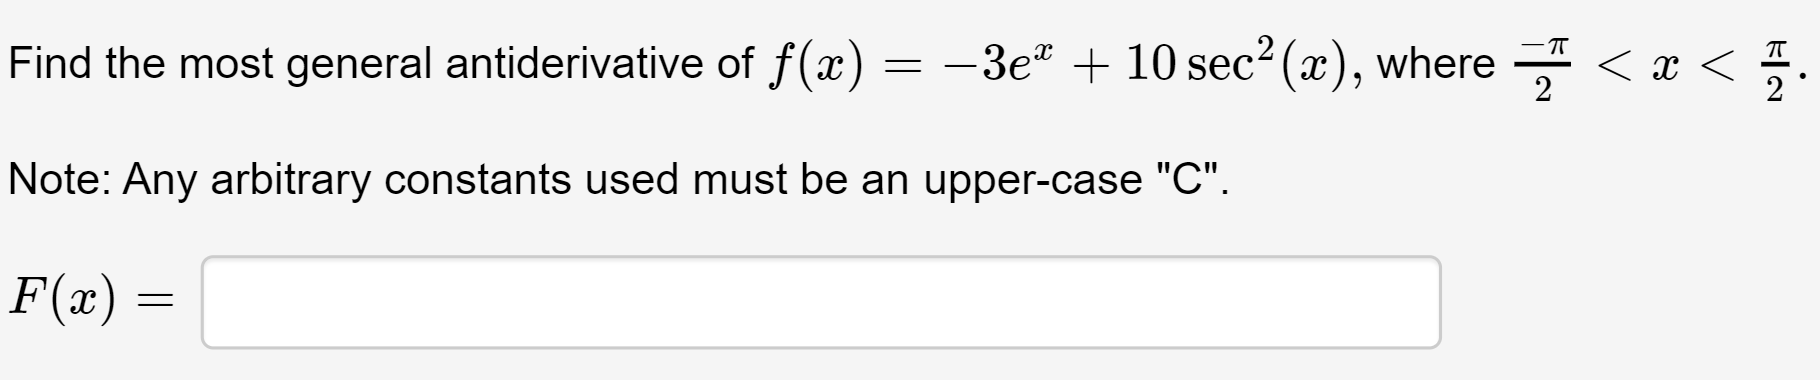 """Find the most general antiderivative of f(x) = -3e"""" + 10 sec2 (x), where - < x < 2 Note: Any arbitrary constants used must be an upper-case """"C"""". F(x) ="""